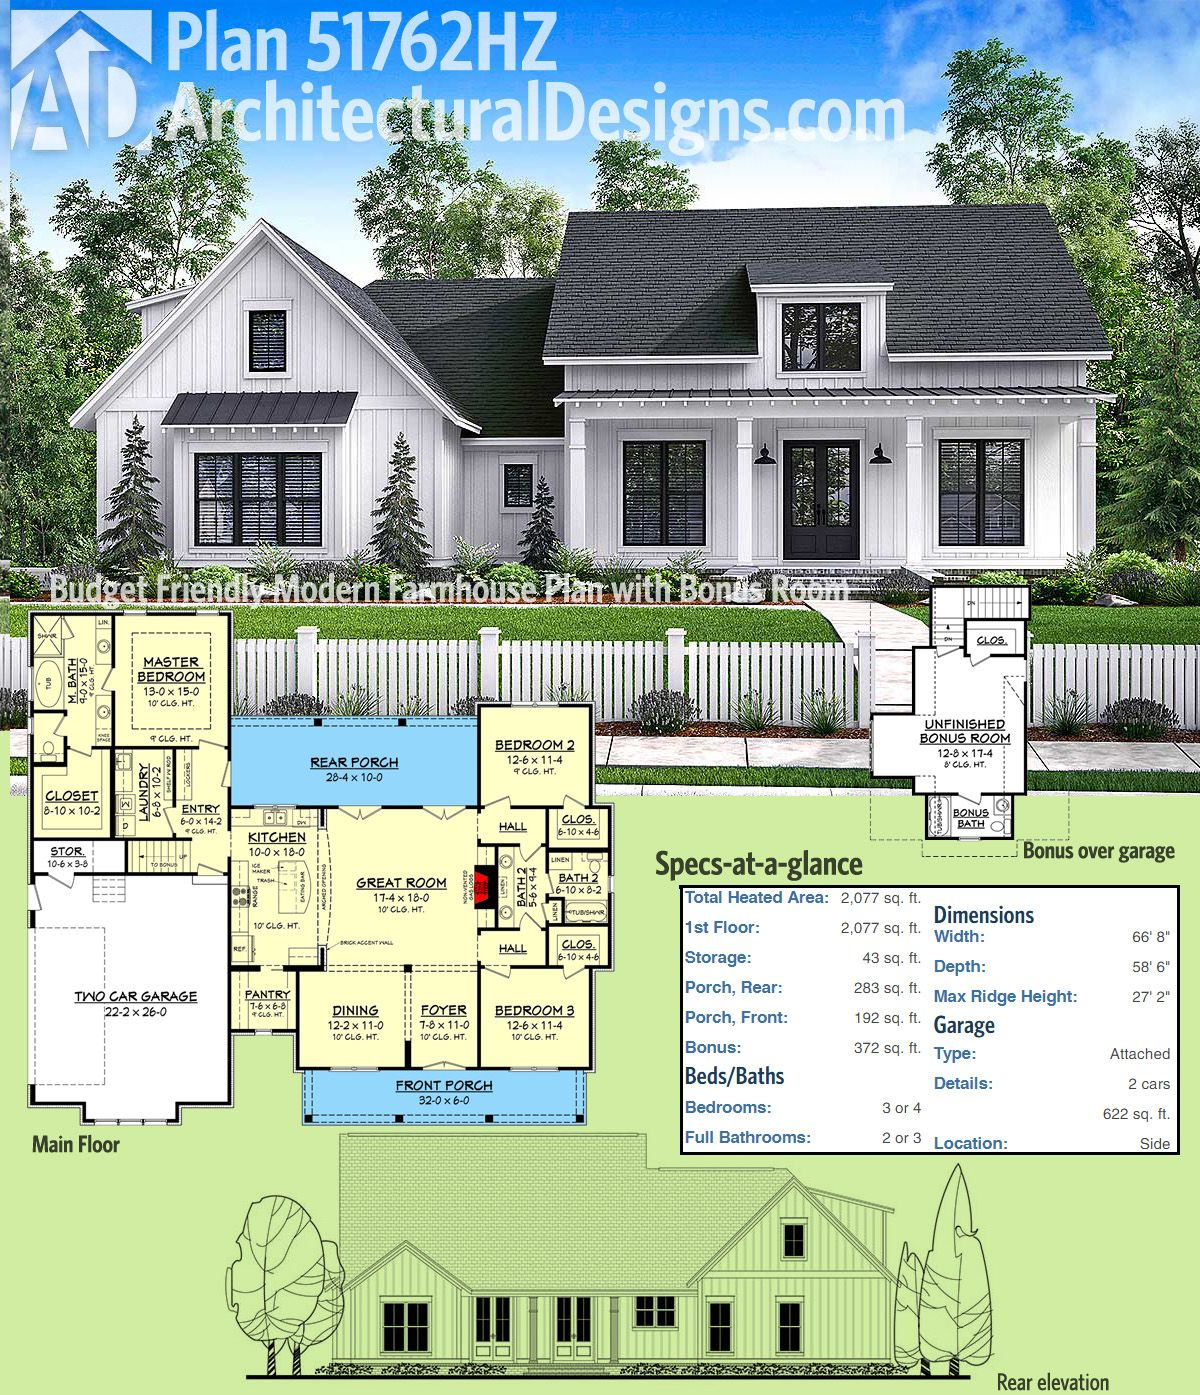 Plan 51762hz budget friendly modern farmhouse plan with for New farmhouse plans